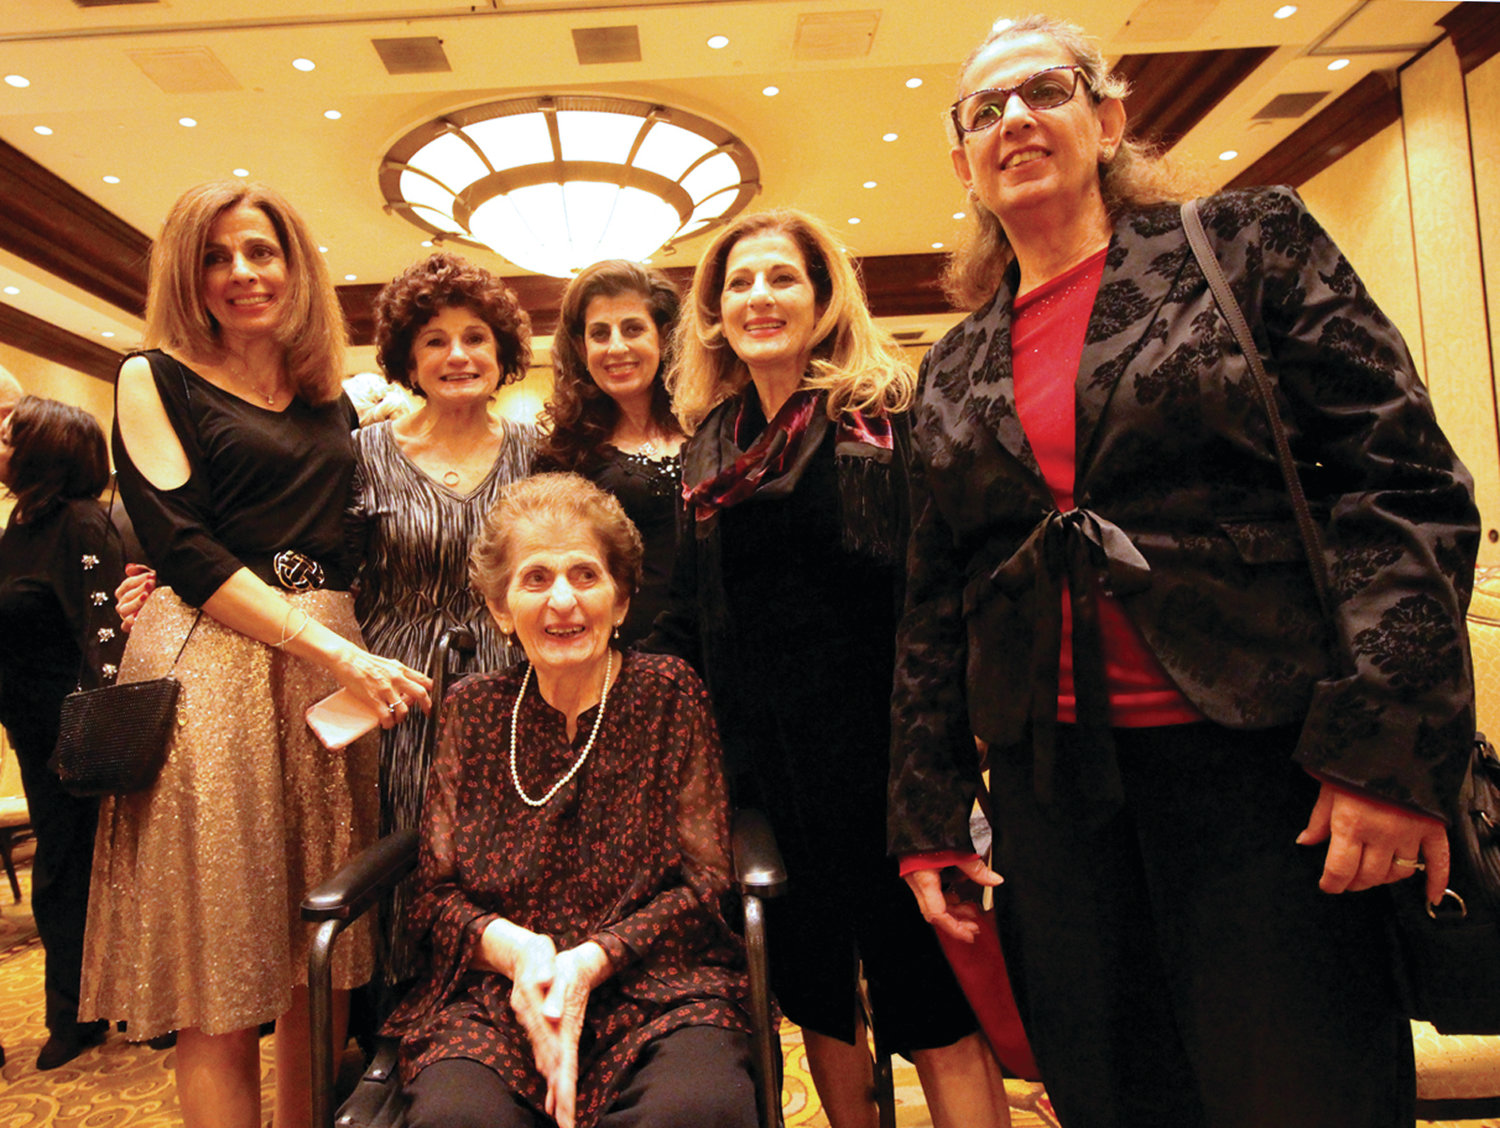 FAMILY MATRIARCH: The mayor's mother, Rose Solomon, is surrounded by her daughters (from left) Linda Maroun, Rosemarie Fontaine, Marilyn Solomon-Bruzzese, Carol Paiva and Nancy Armoush.